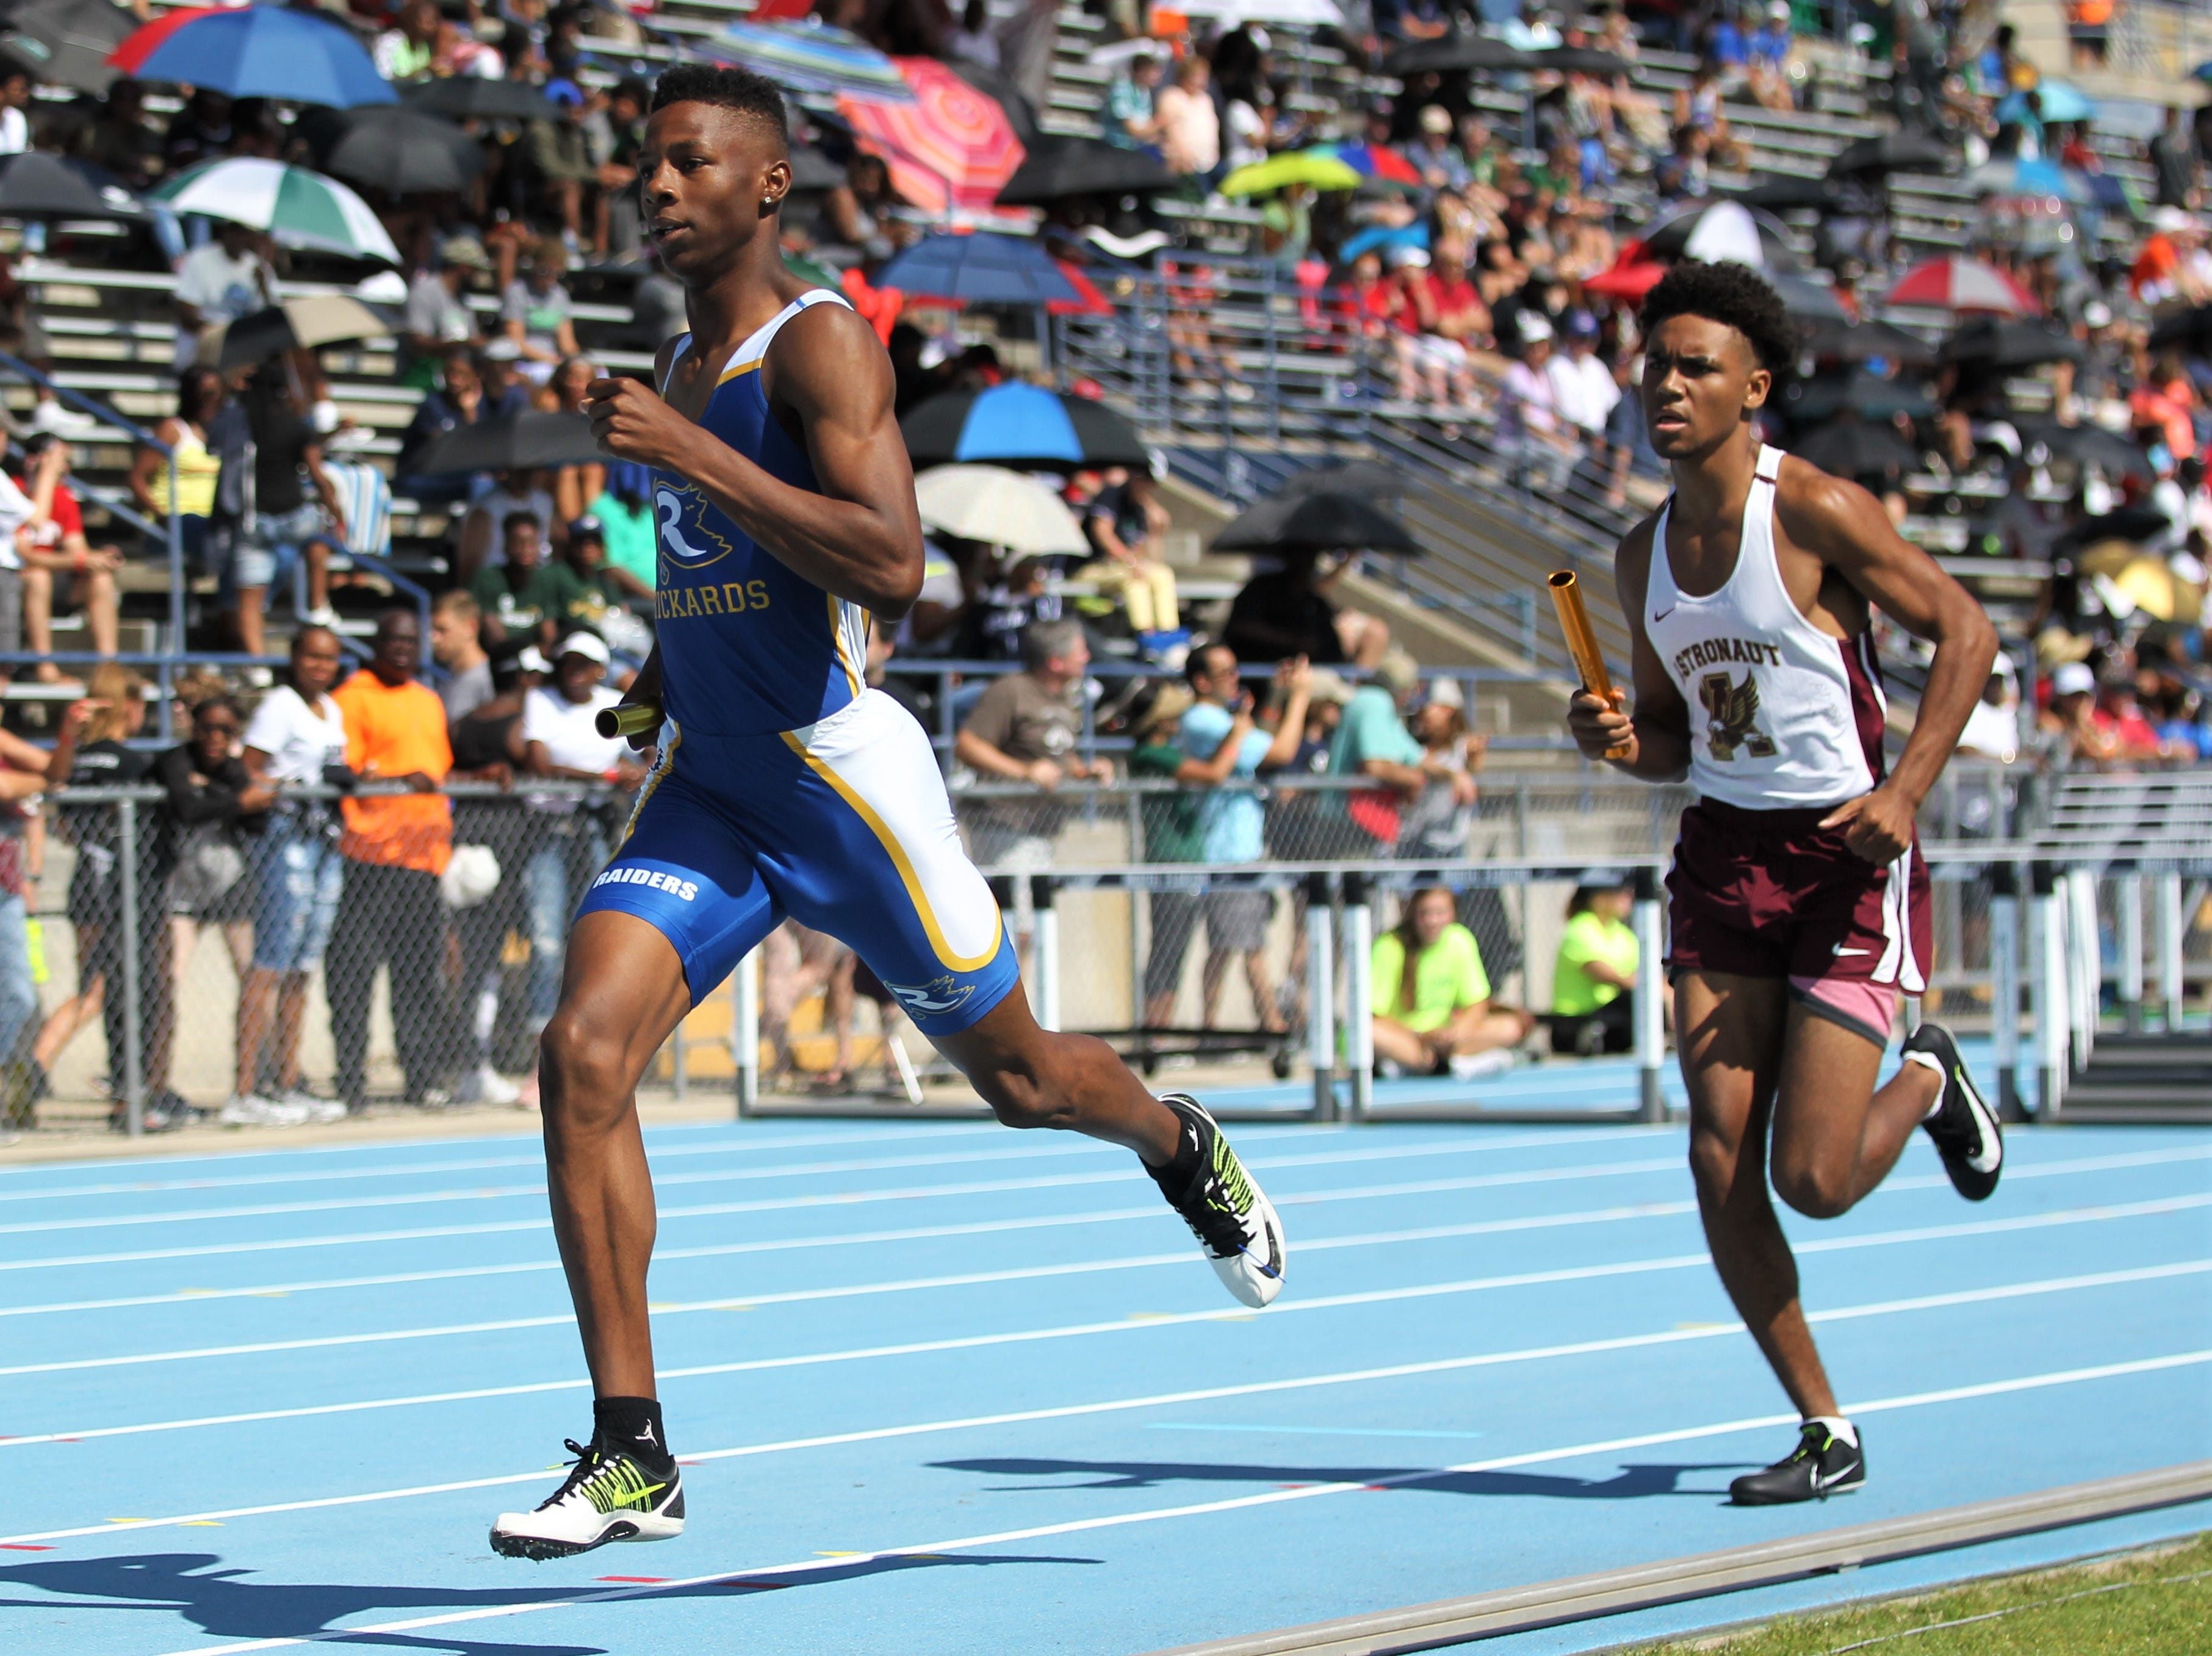 Rickards senior Chris Robinson runs a 4x800 leg during the FHSAA Track and Field State Championships at UNF's Hodges Stadium in Jacksonville on May 4, 2019.